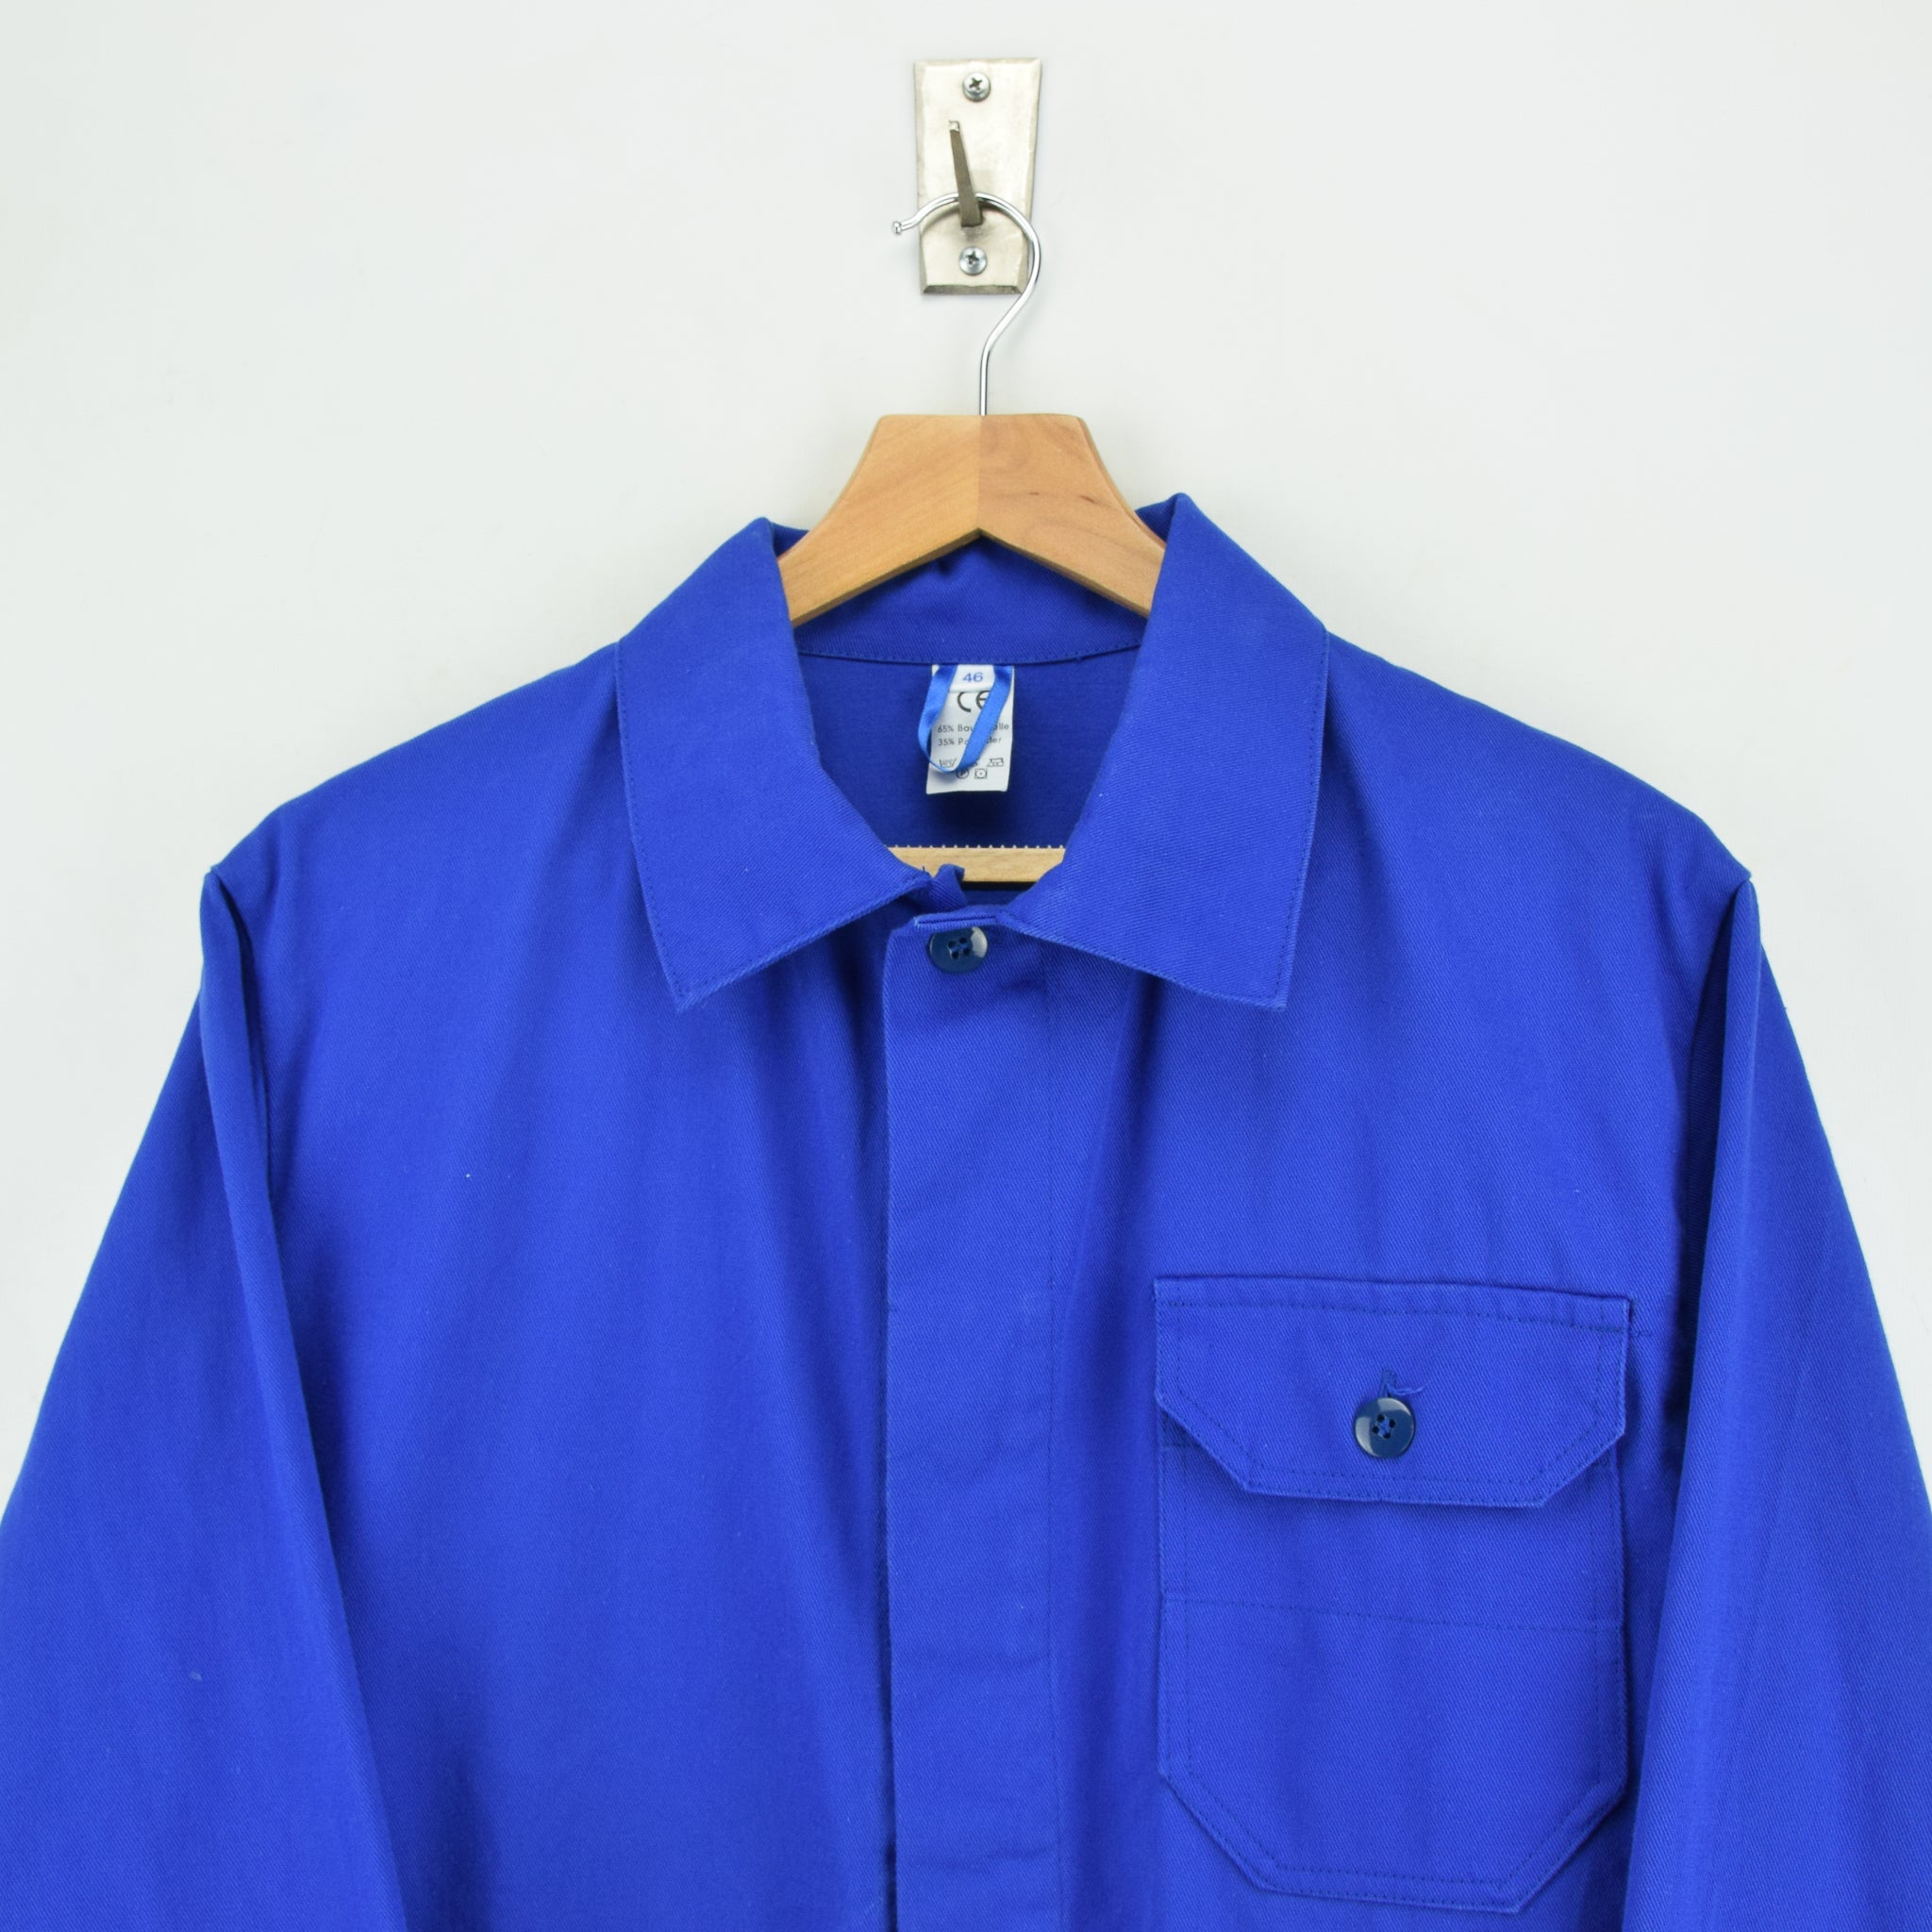 Vintage Bright Blue French Style Worker Sanforized Cotton Chore Jacket M chest